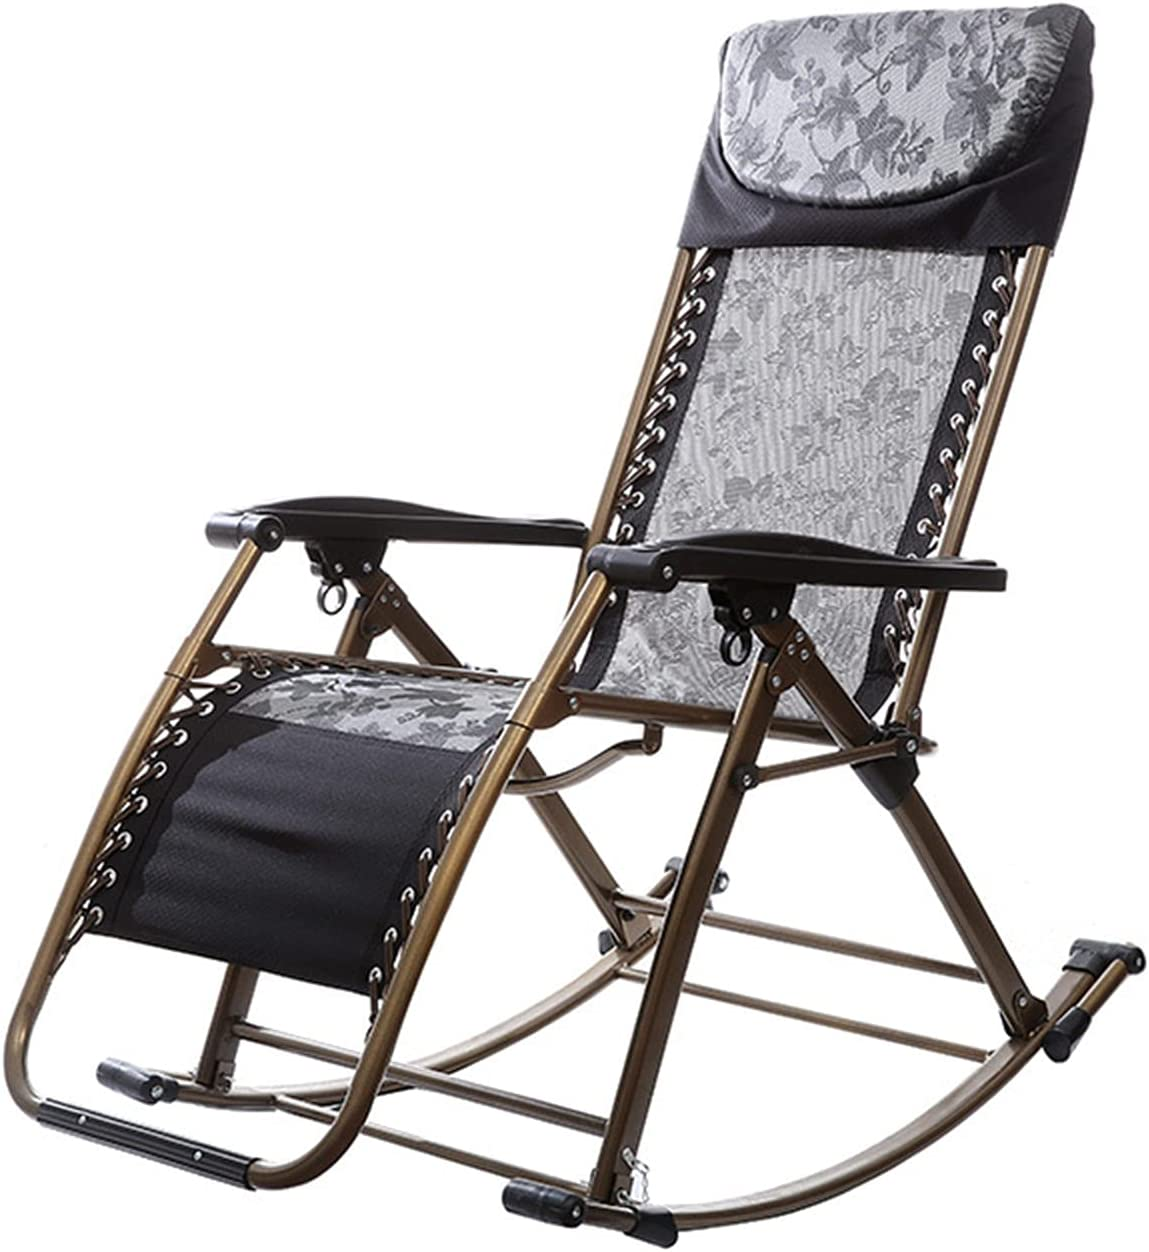 Free shipping anywhere in the nation BKWJ Garden Foldable Rocking Zero-Grav Adjustable Chair Outdoor Ranking TOP18